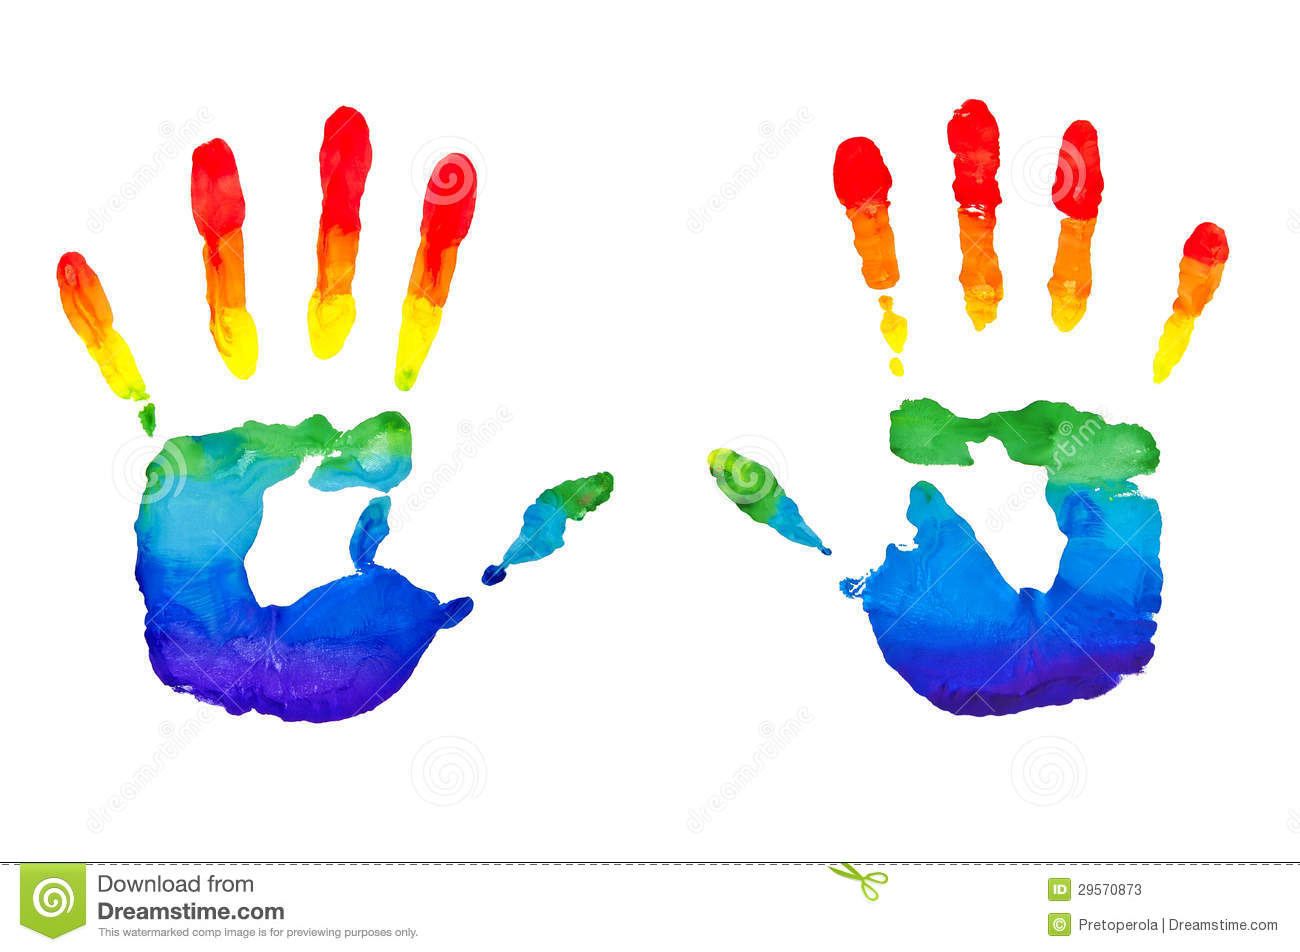 rainbow painted hands stock photos image 29570873 Lady Silhouette Clip Art Silhouette Clip Art Blank Umberella